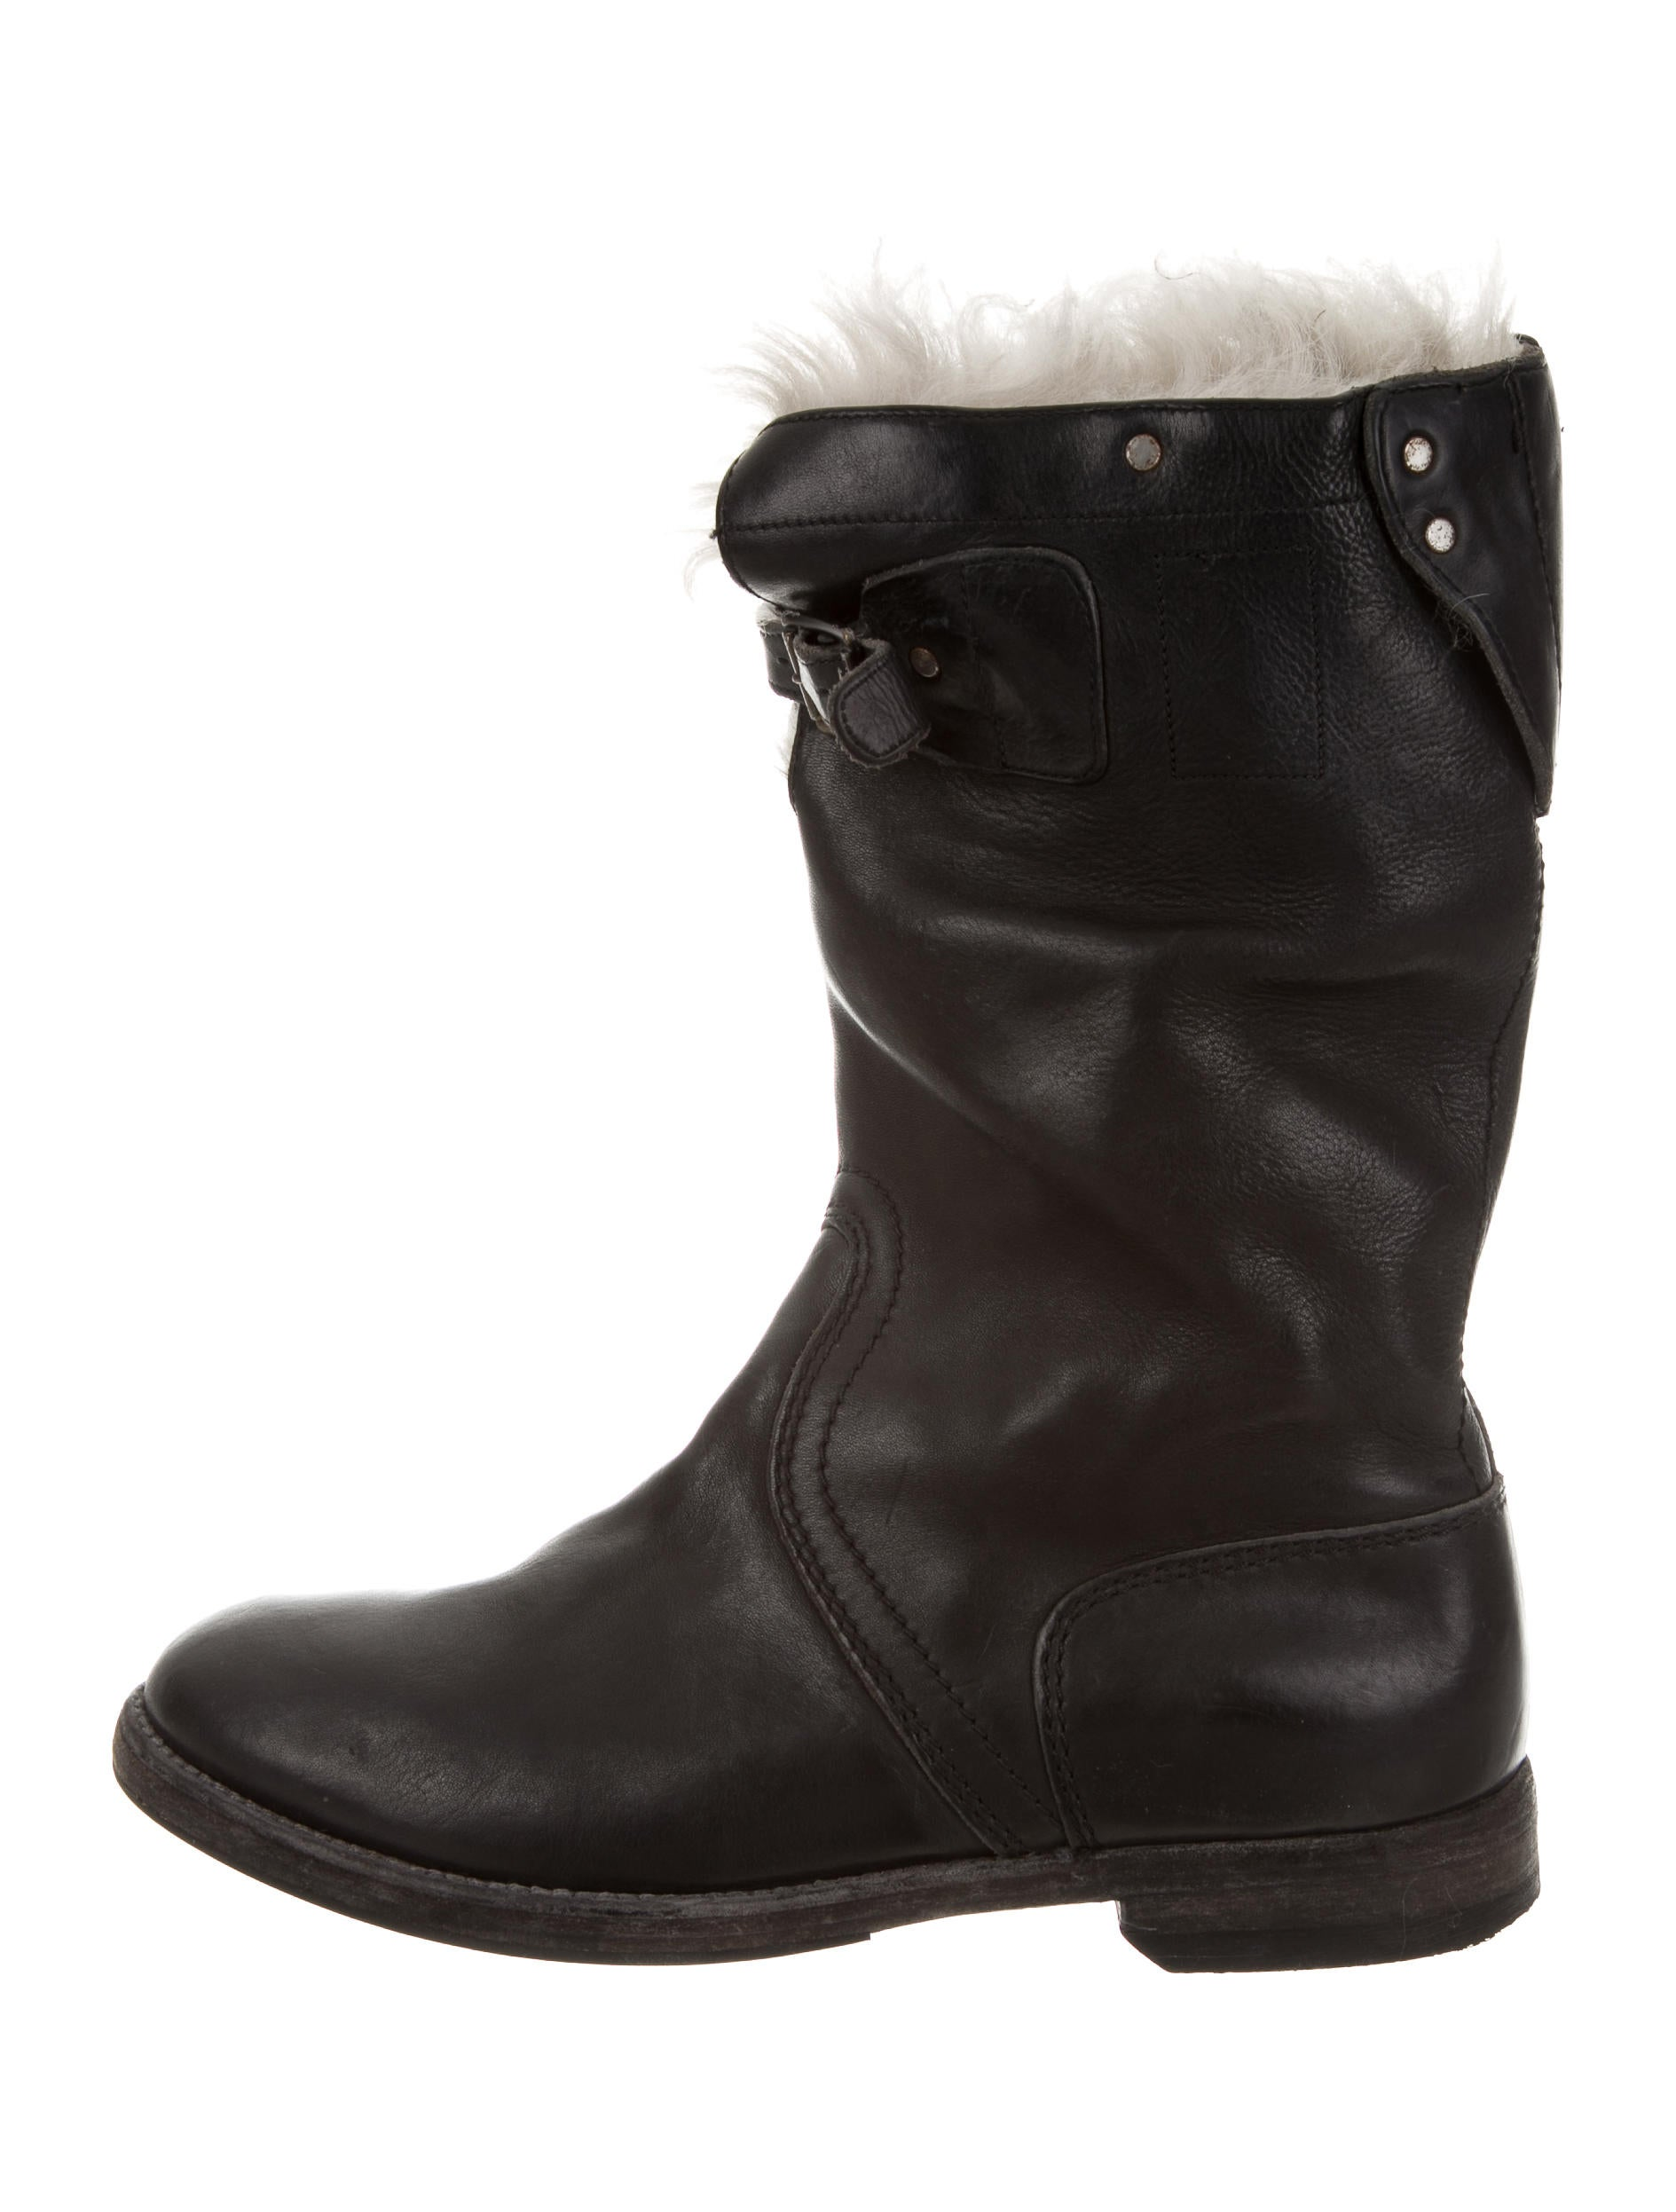 burberry prorsum shearling lined leather boots shoes